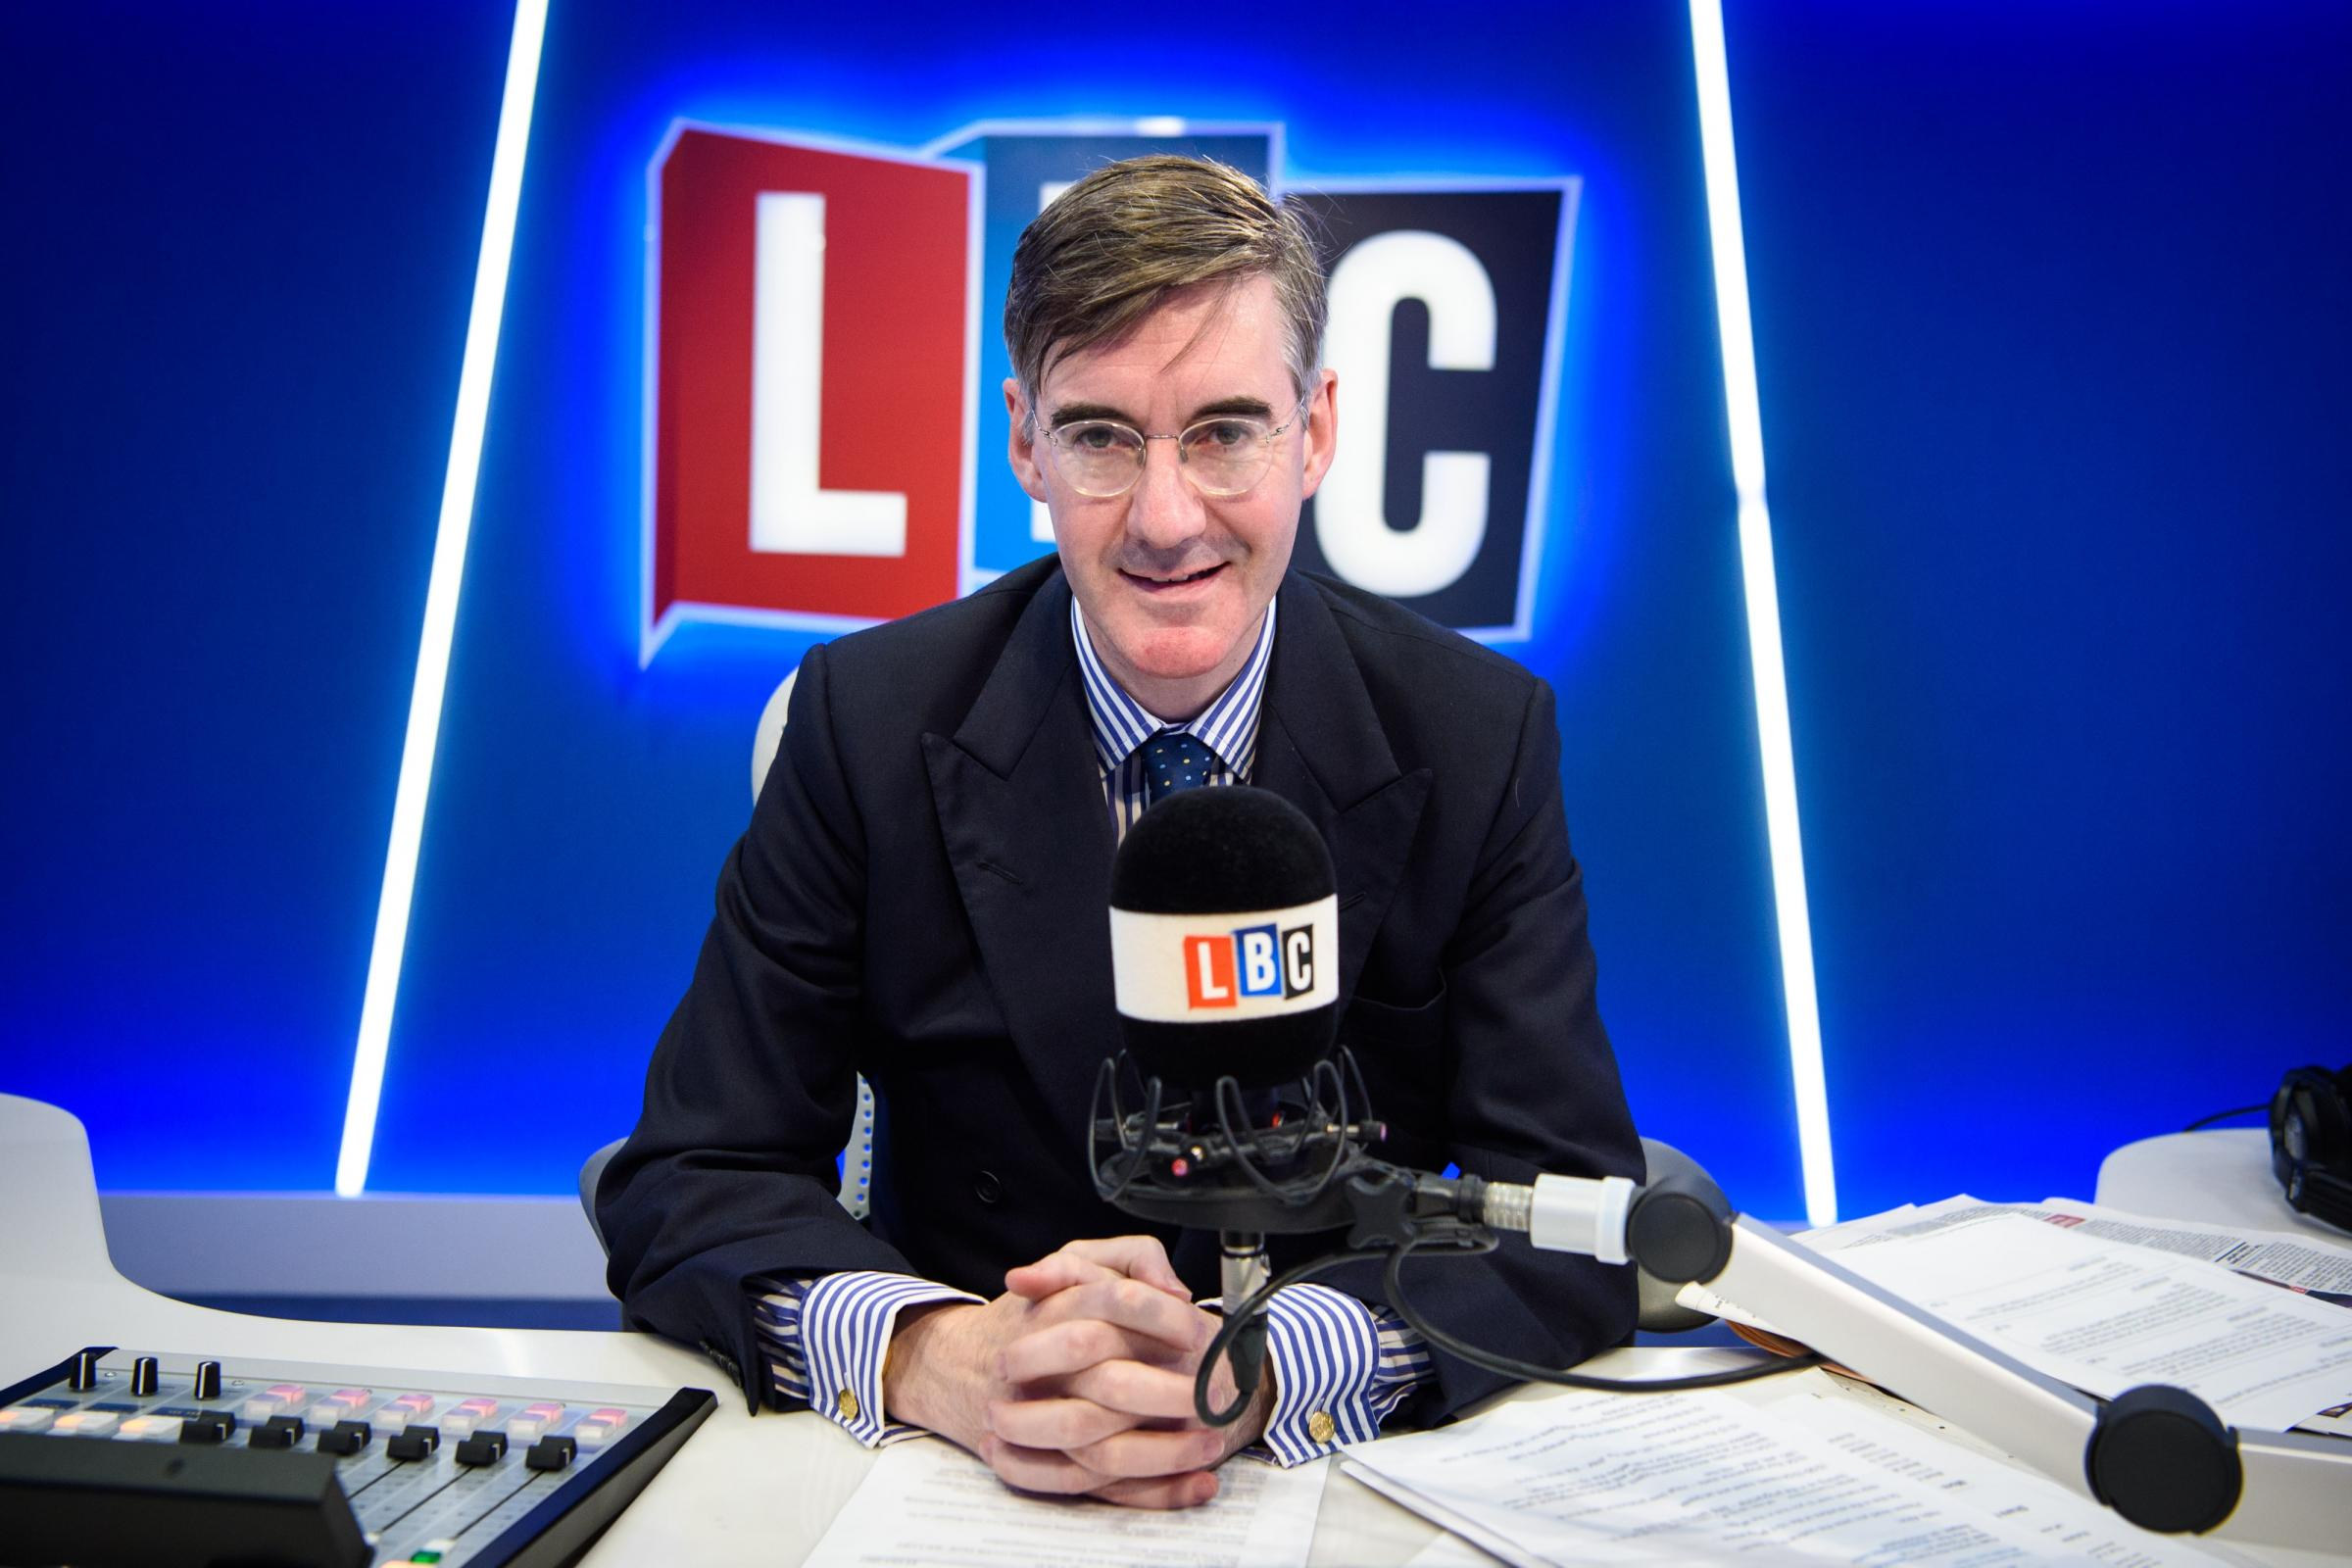 Tory Brexiteer Jacob Rees-Mogg lands LBC radio show in run-up to Brexit